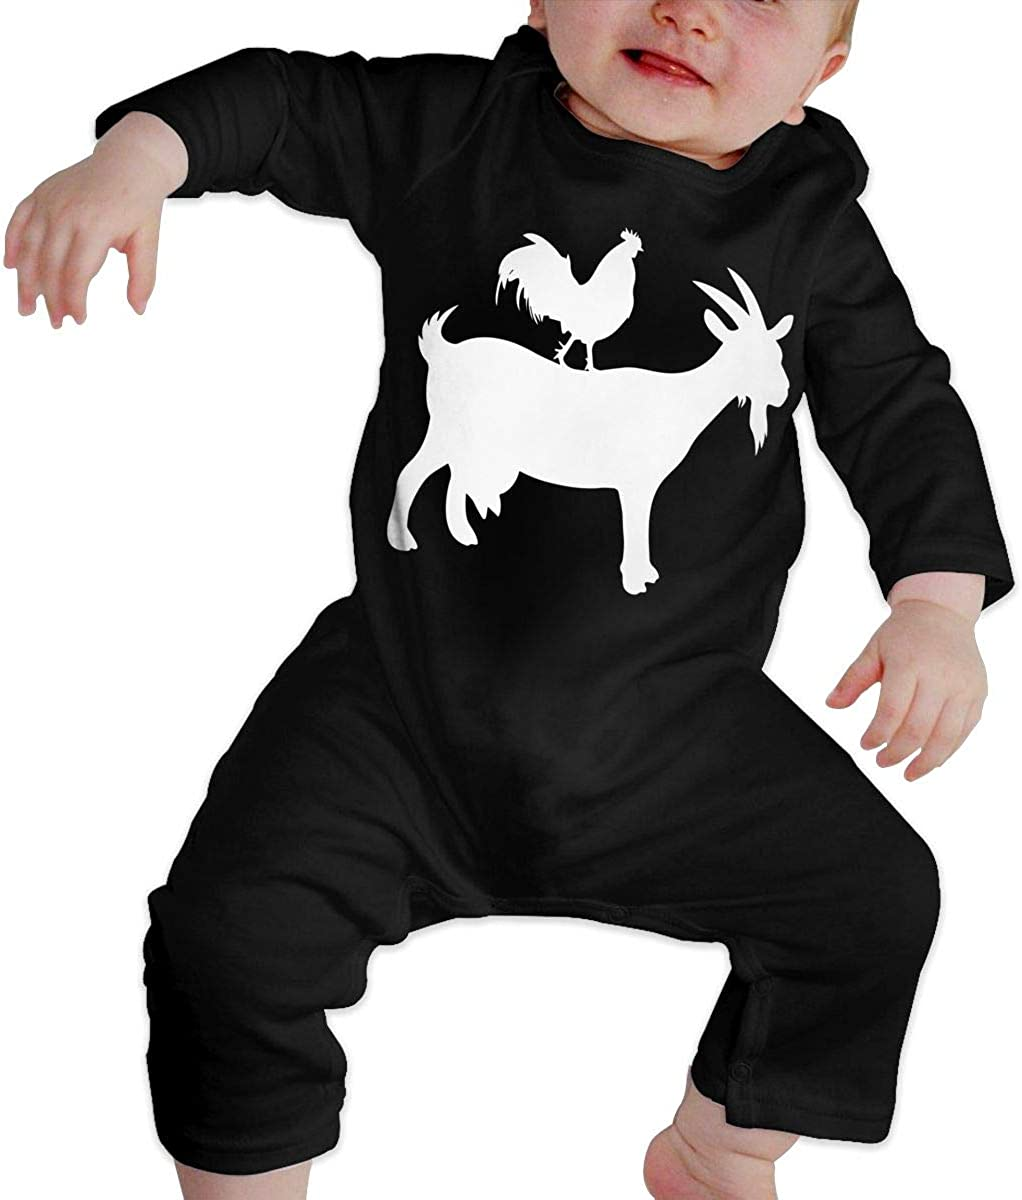 YELTY6F Goat and Rooster Printed Newborn Baby Boy Girl Jumpsuit Long Sleeve Romper Black